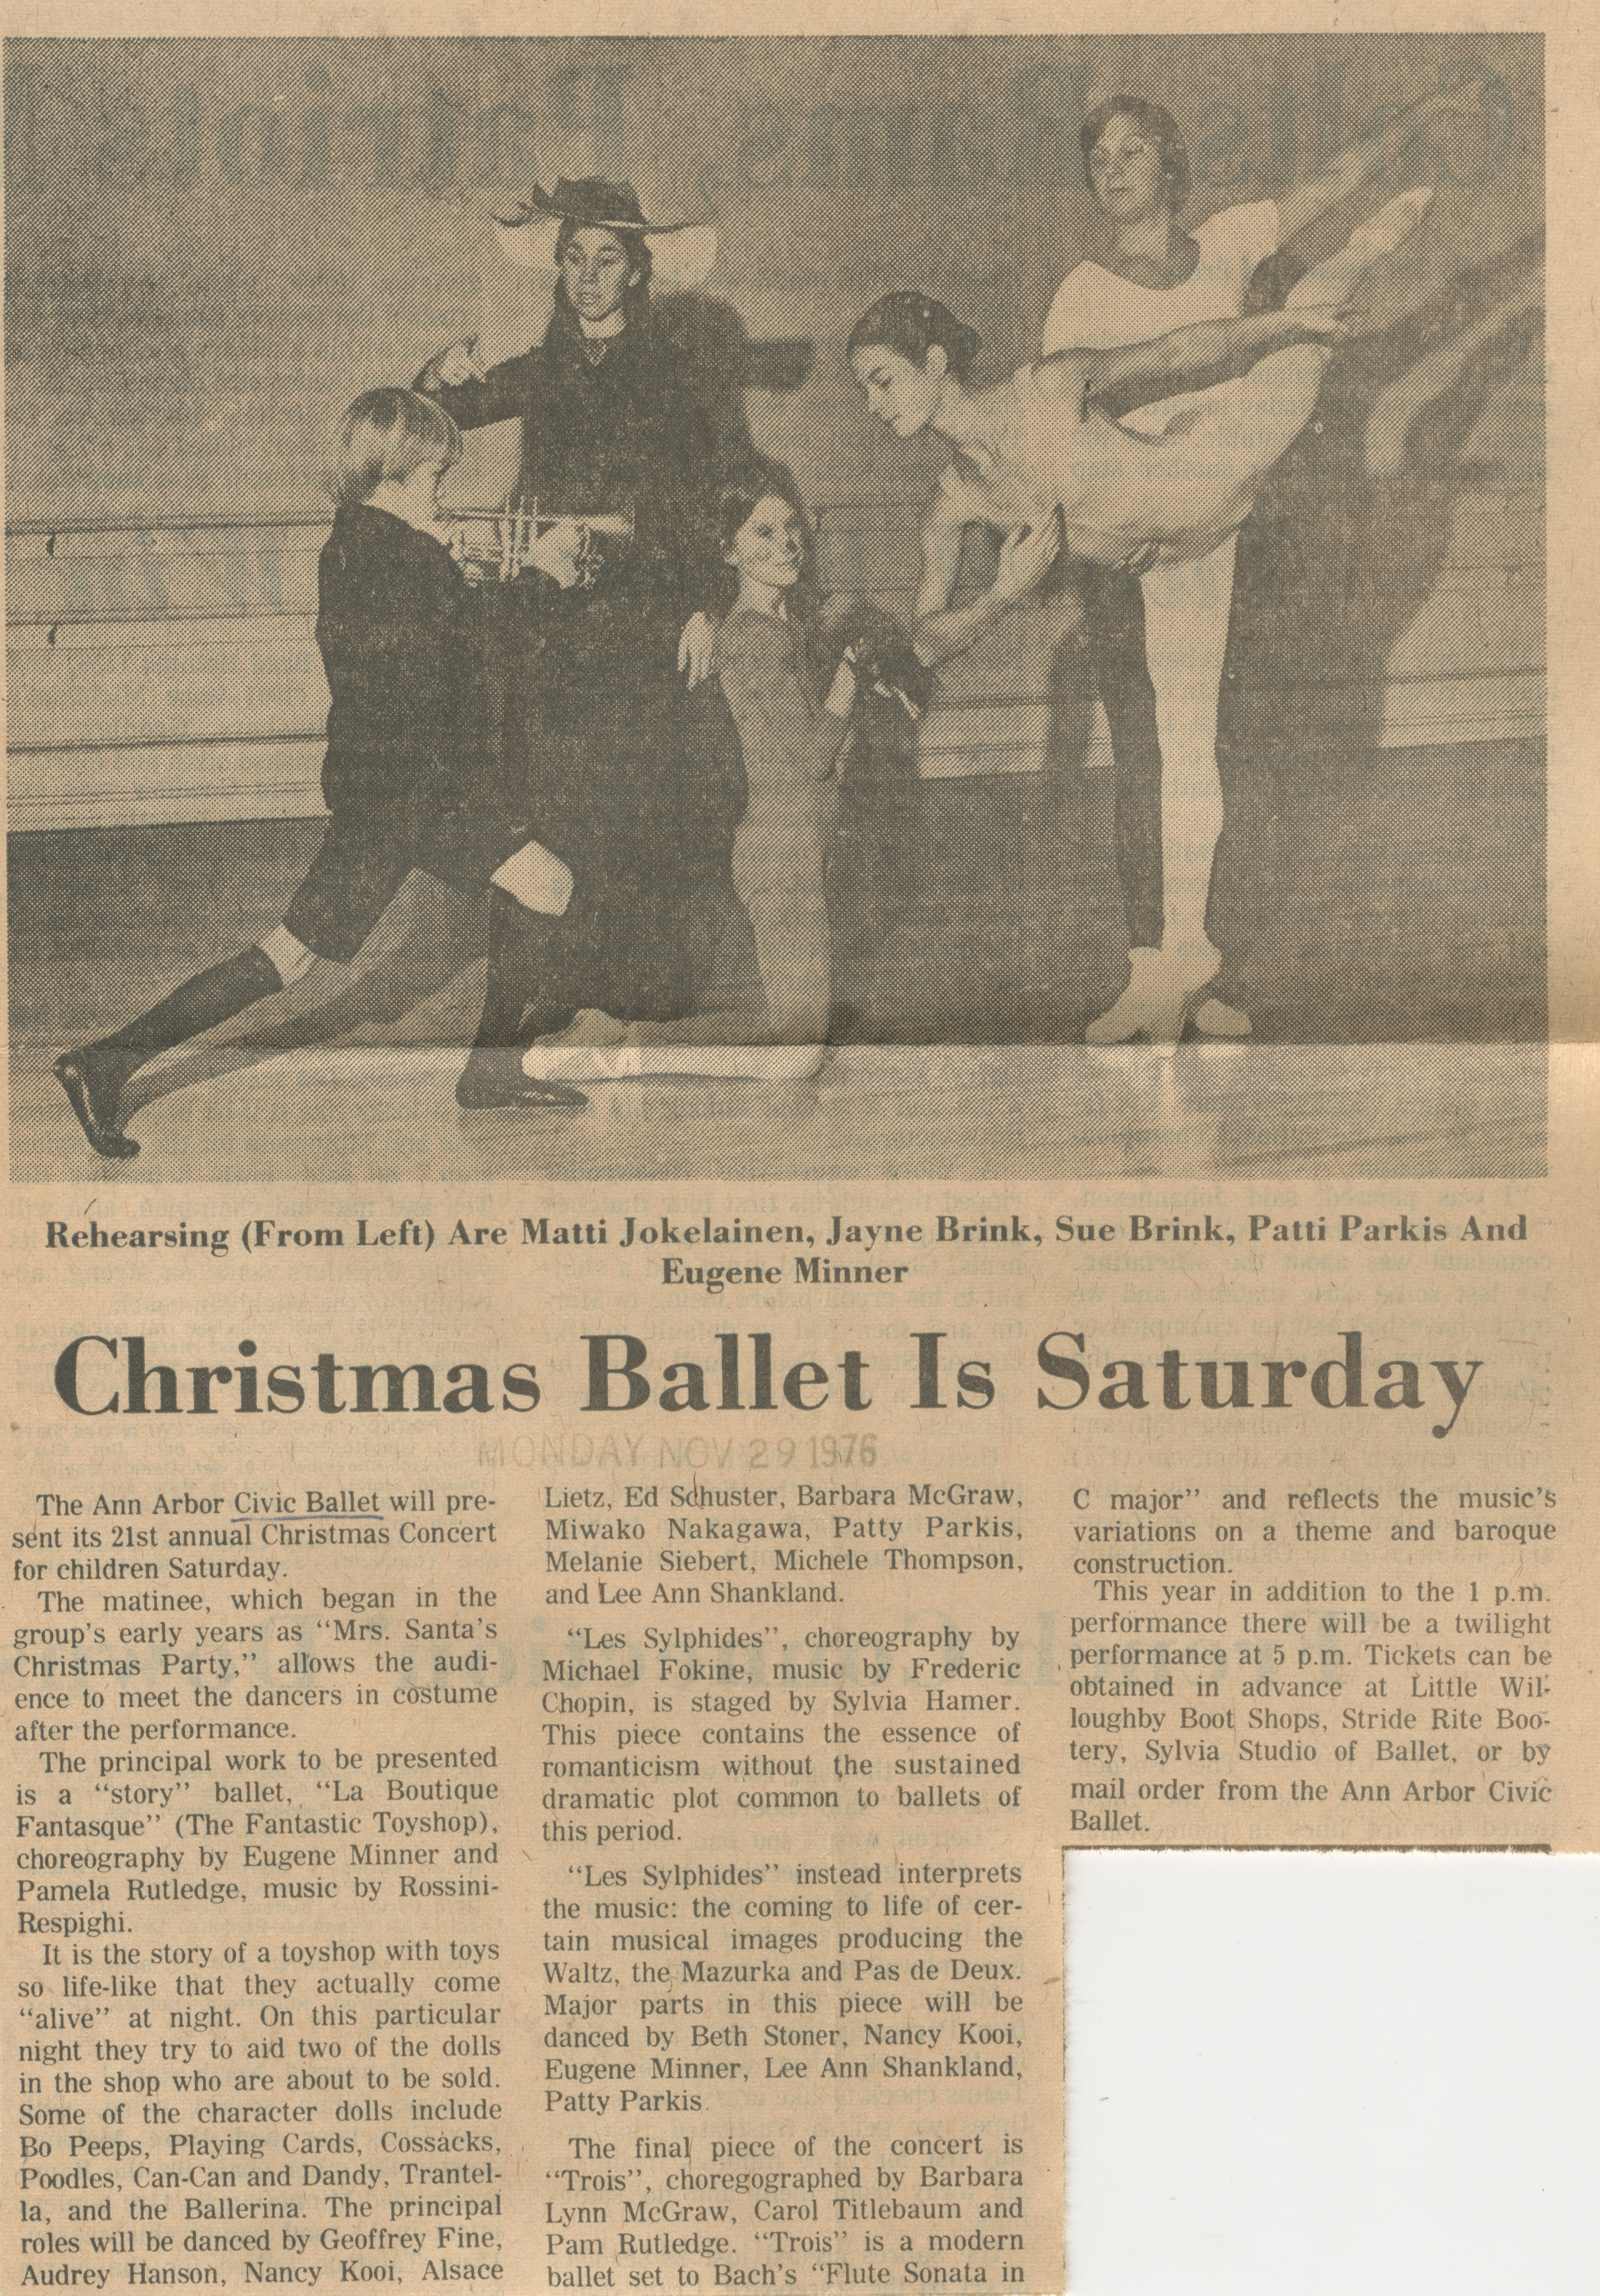 Christmas Ballet Is Saturday image